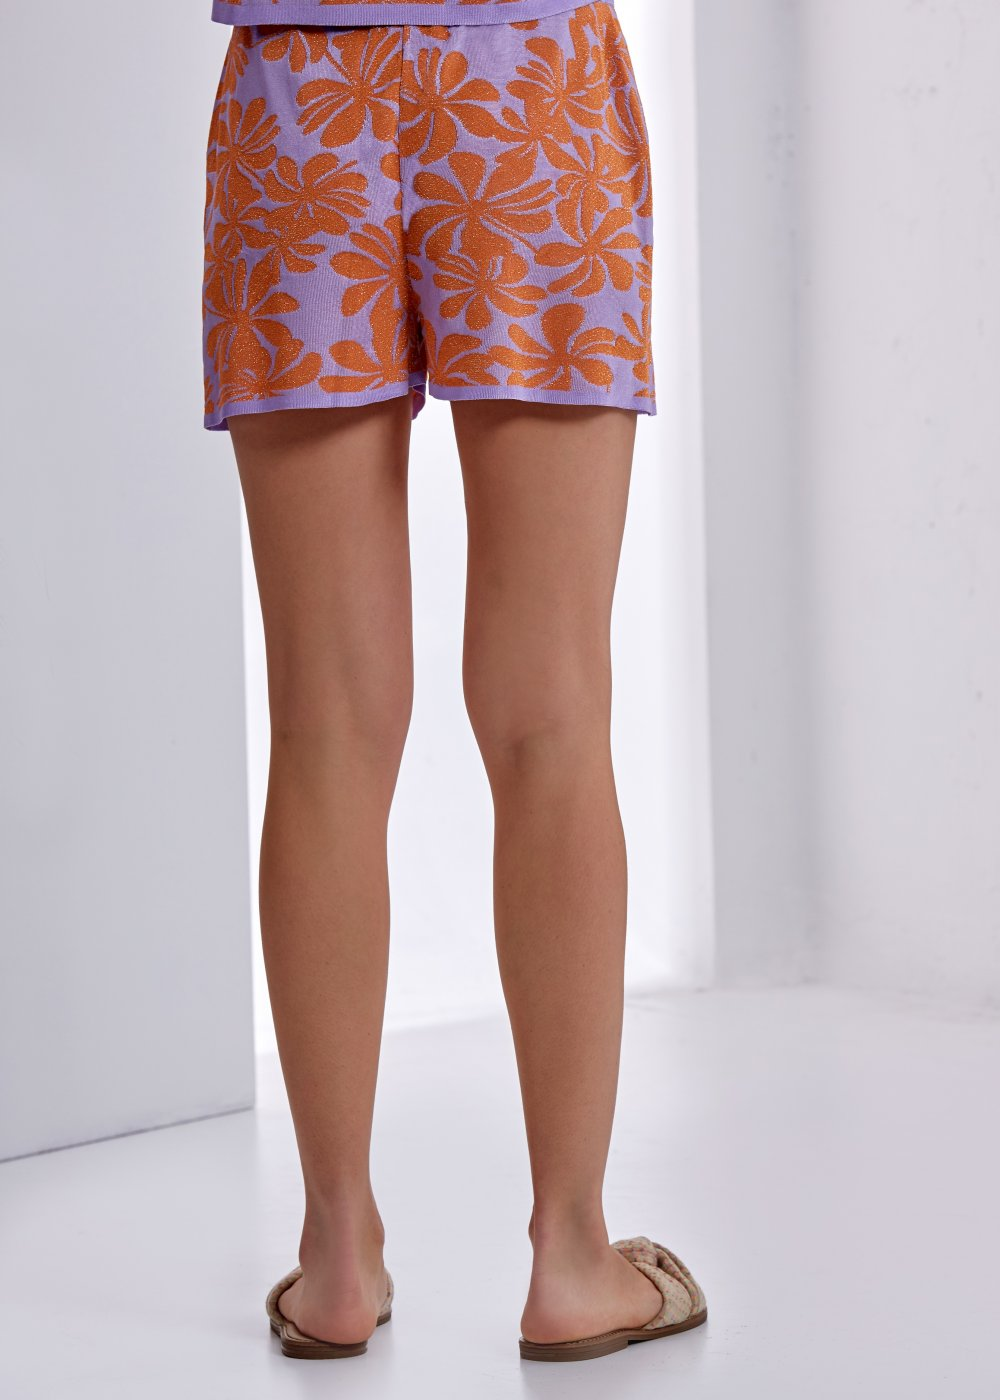 Patterned Multicolor Knit Short